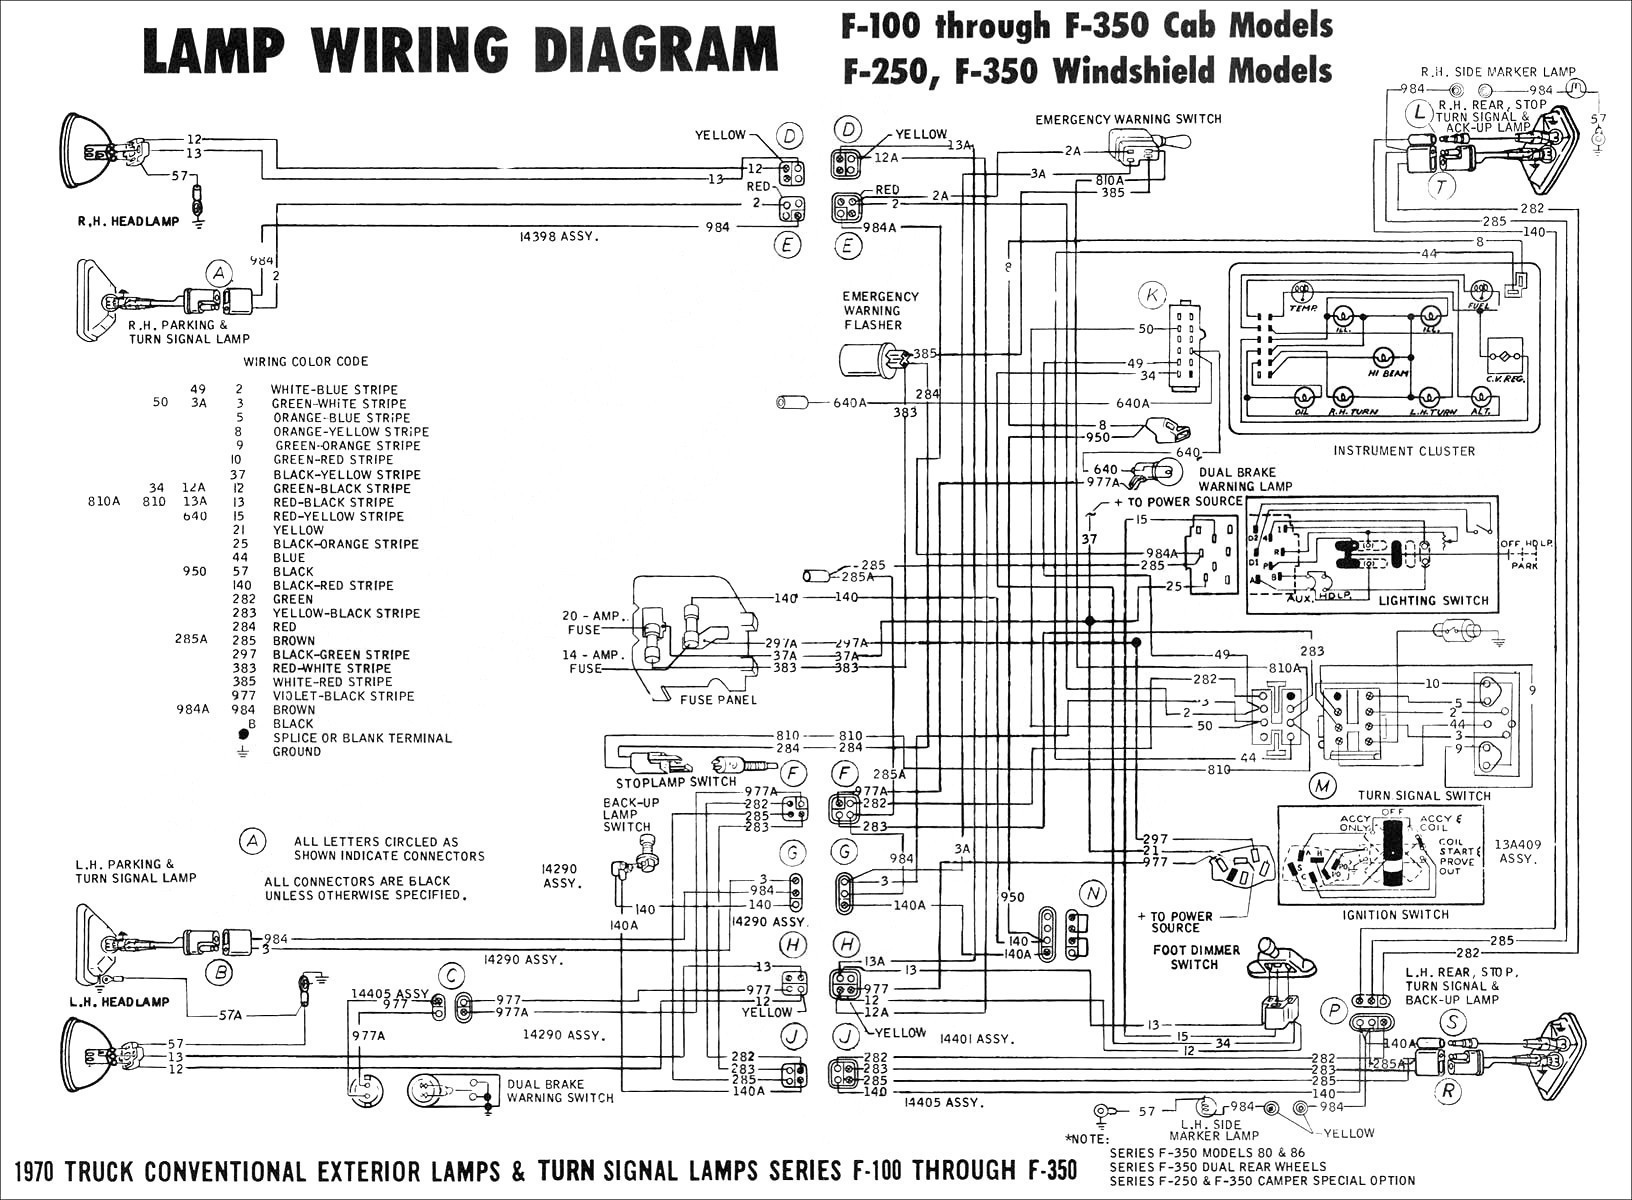 2005 toyota Tacoma Engine Diagram 2009 toyota Ta A Trailer Wiring Diagram Sample Of 2005 toyota Tacoma Engine Diagram